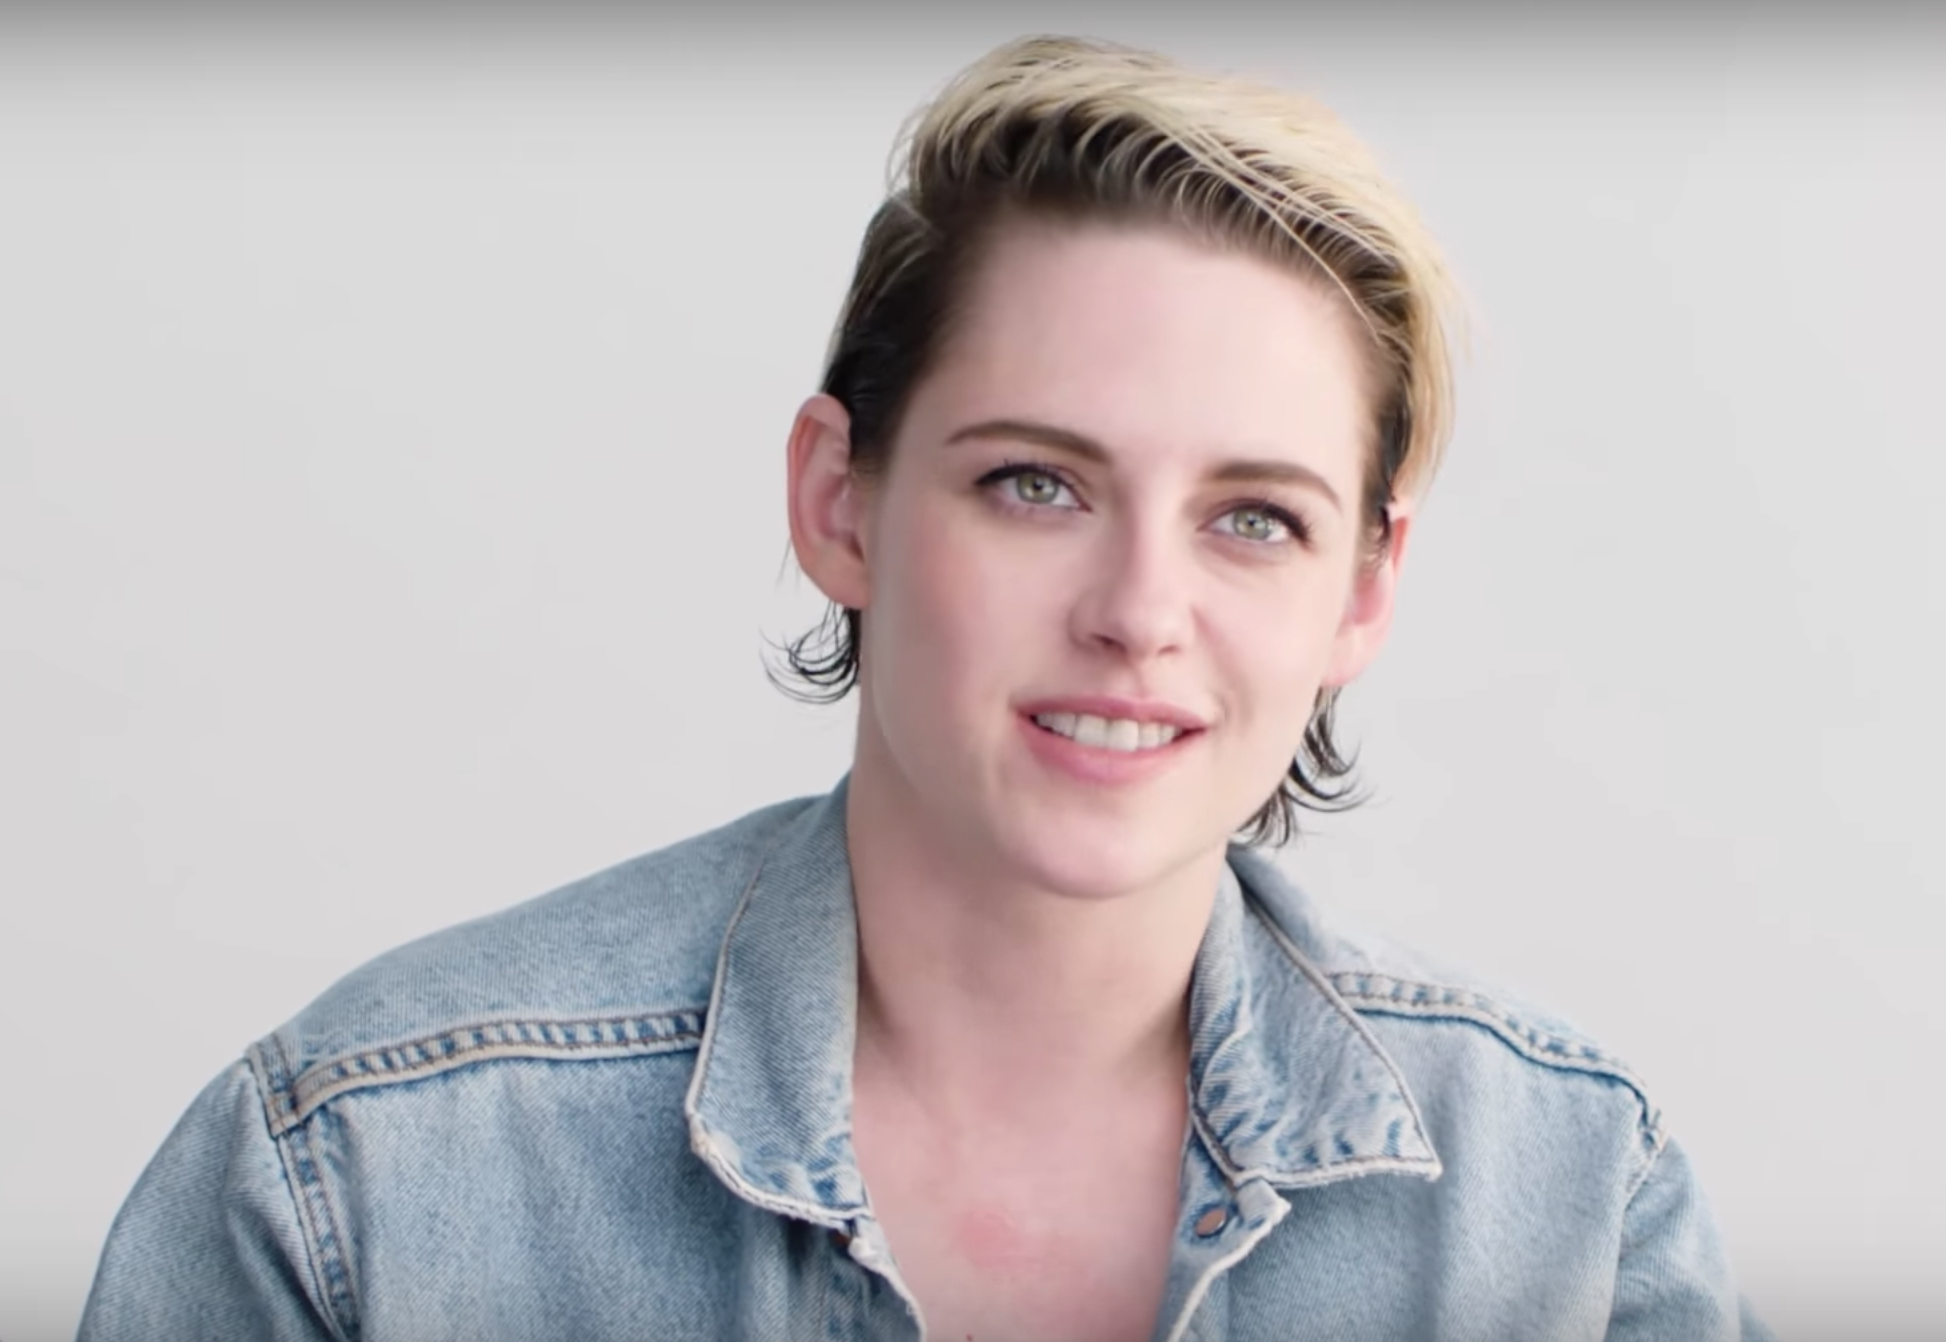 Kristen Stewart on How Joan Jett Made Her Cry and Sean Penn Made Her Want to Direct